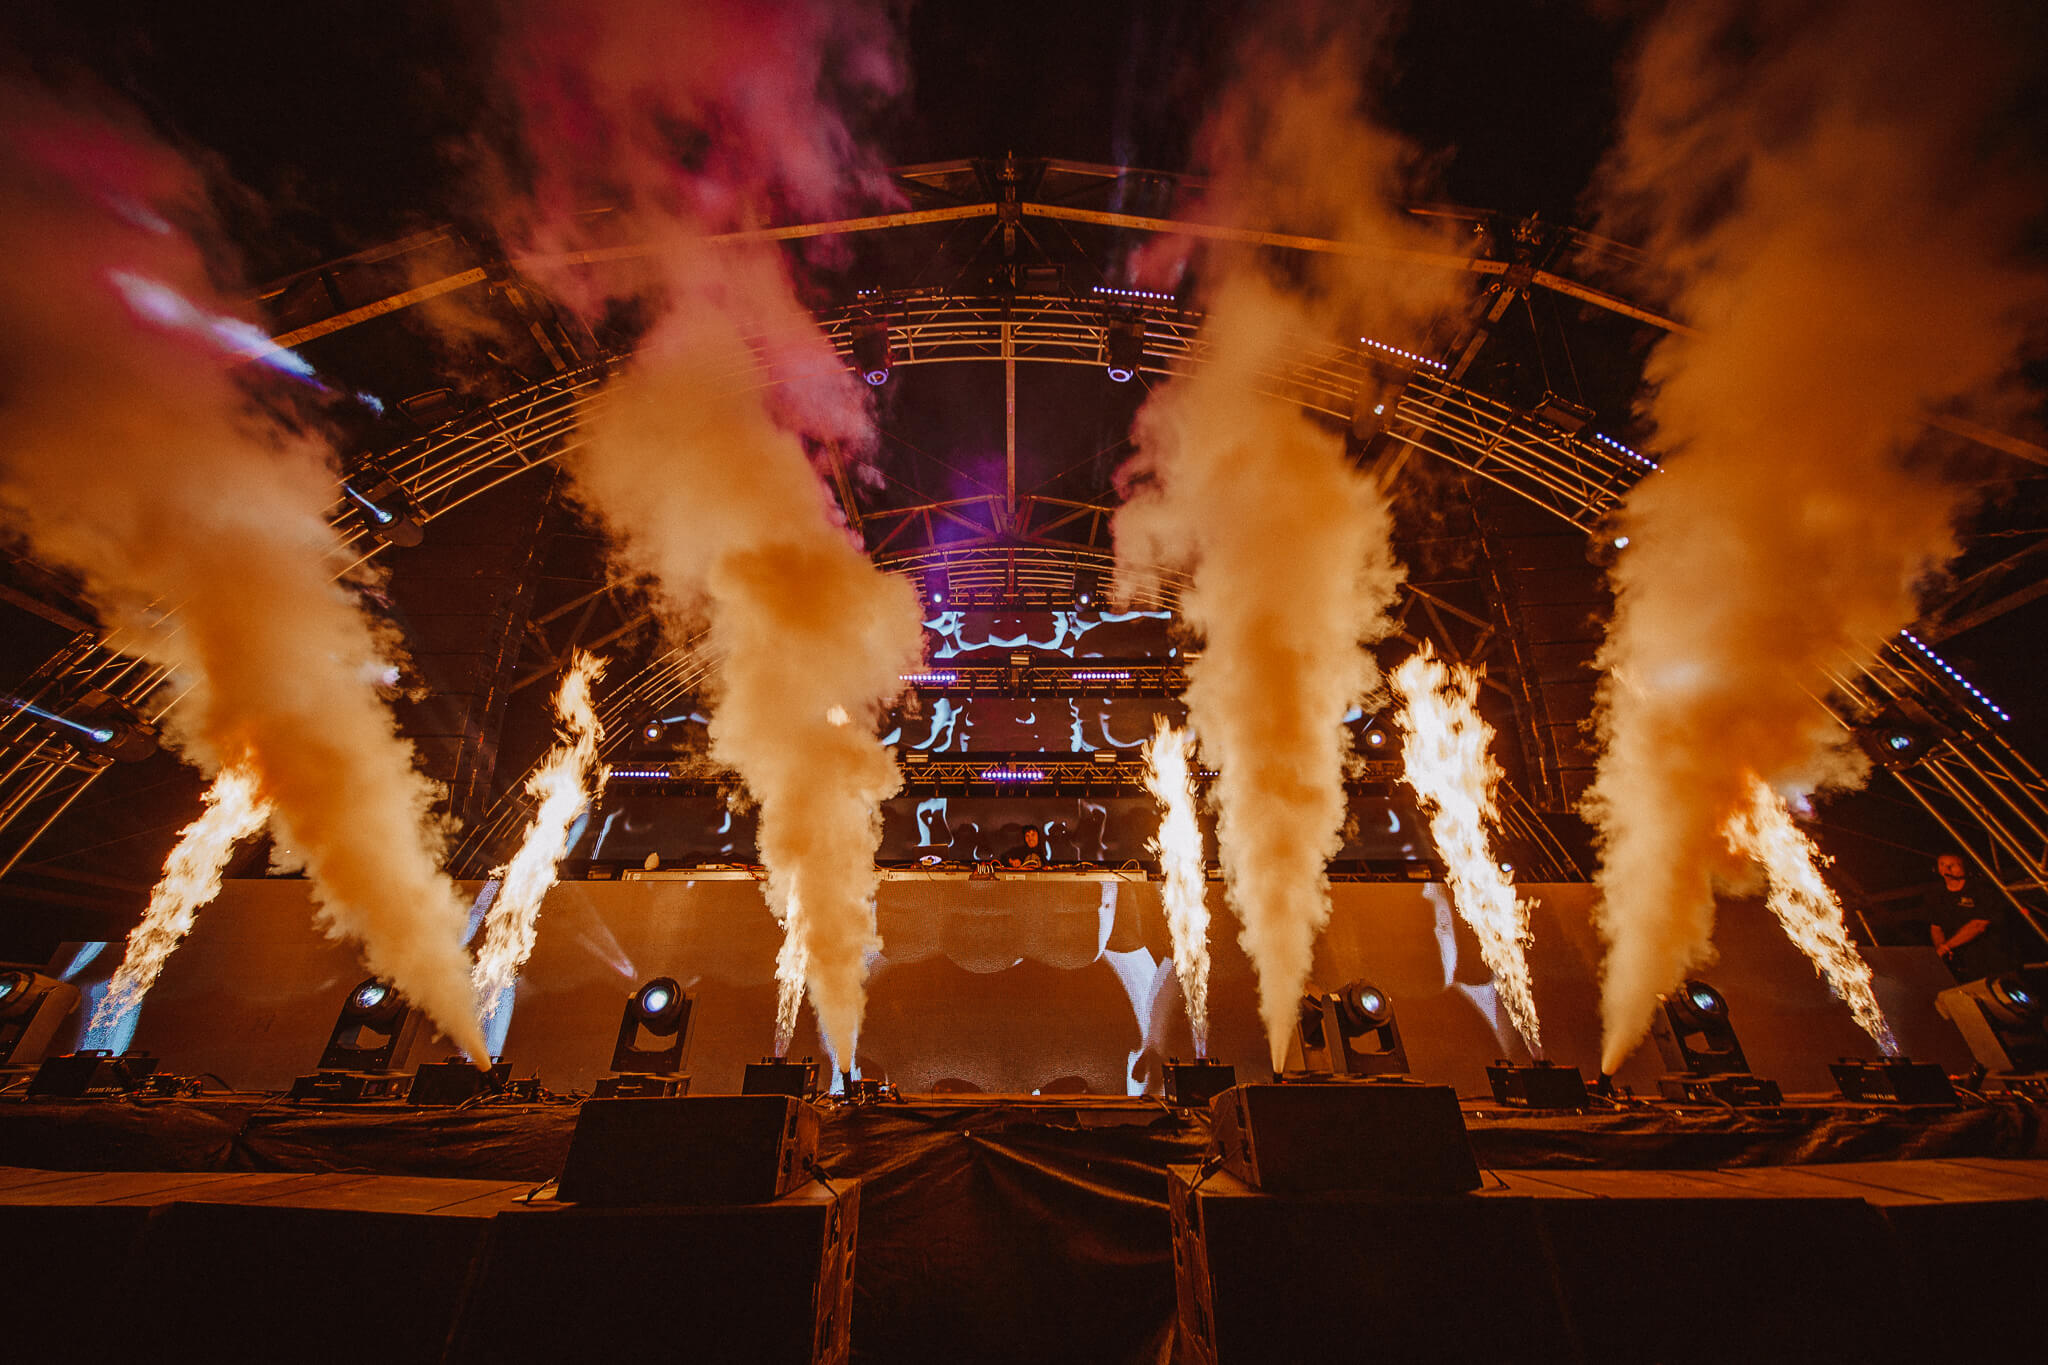 fire and rage at the main stage